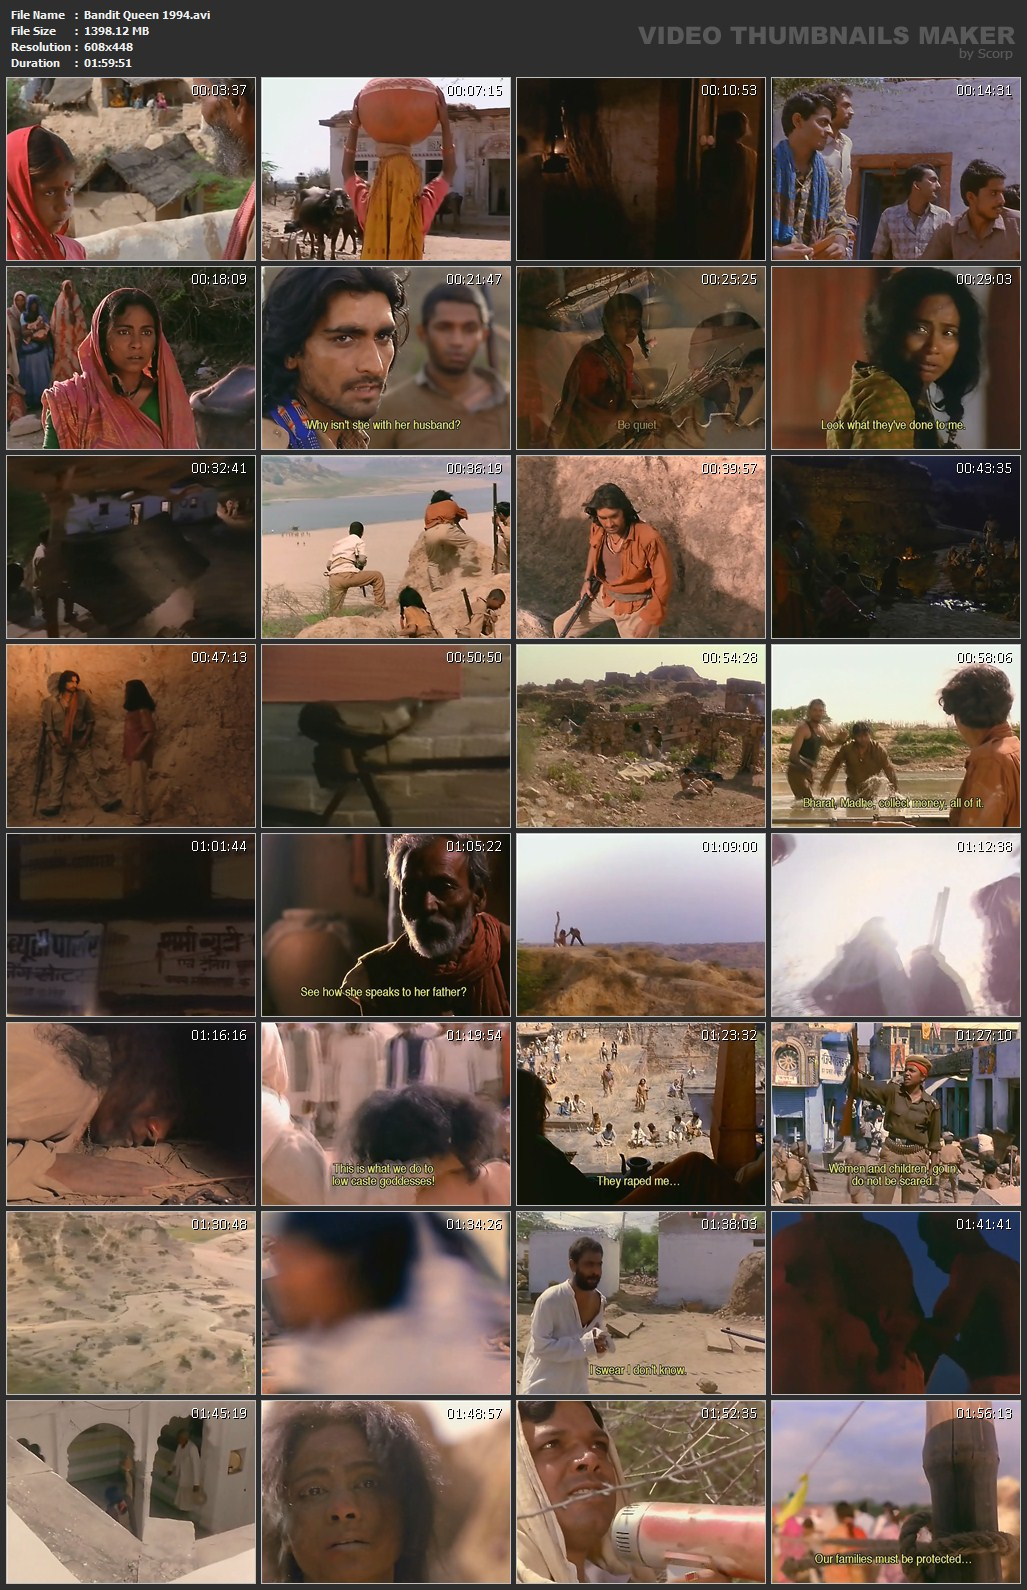 Bandit Queen Picture Review Image Summary